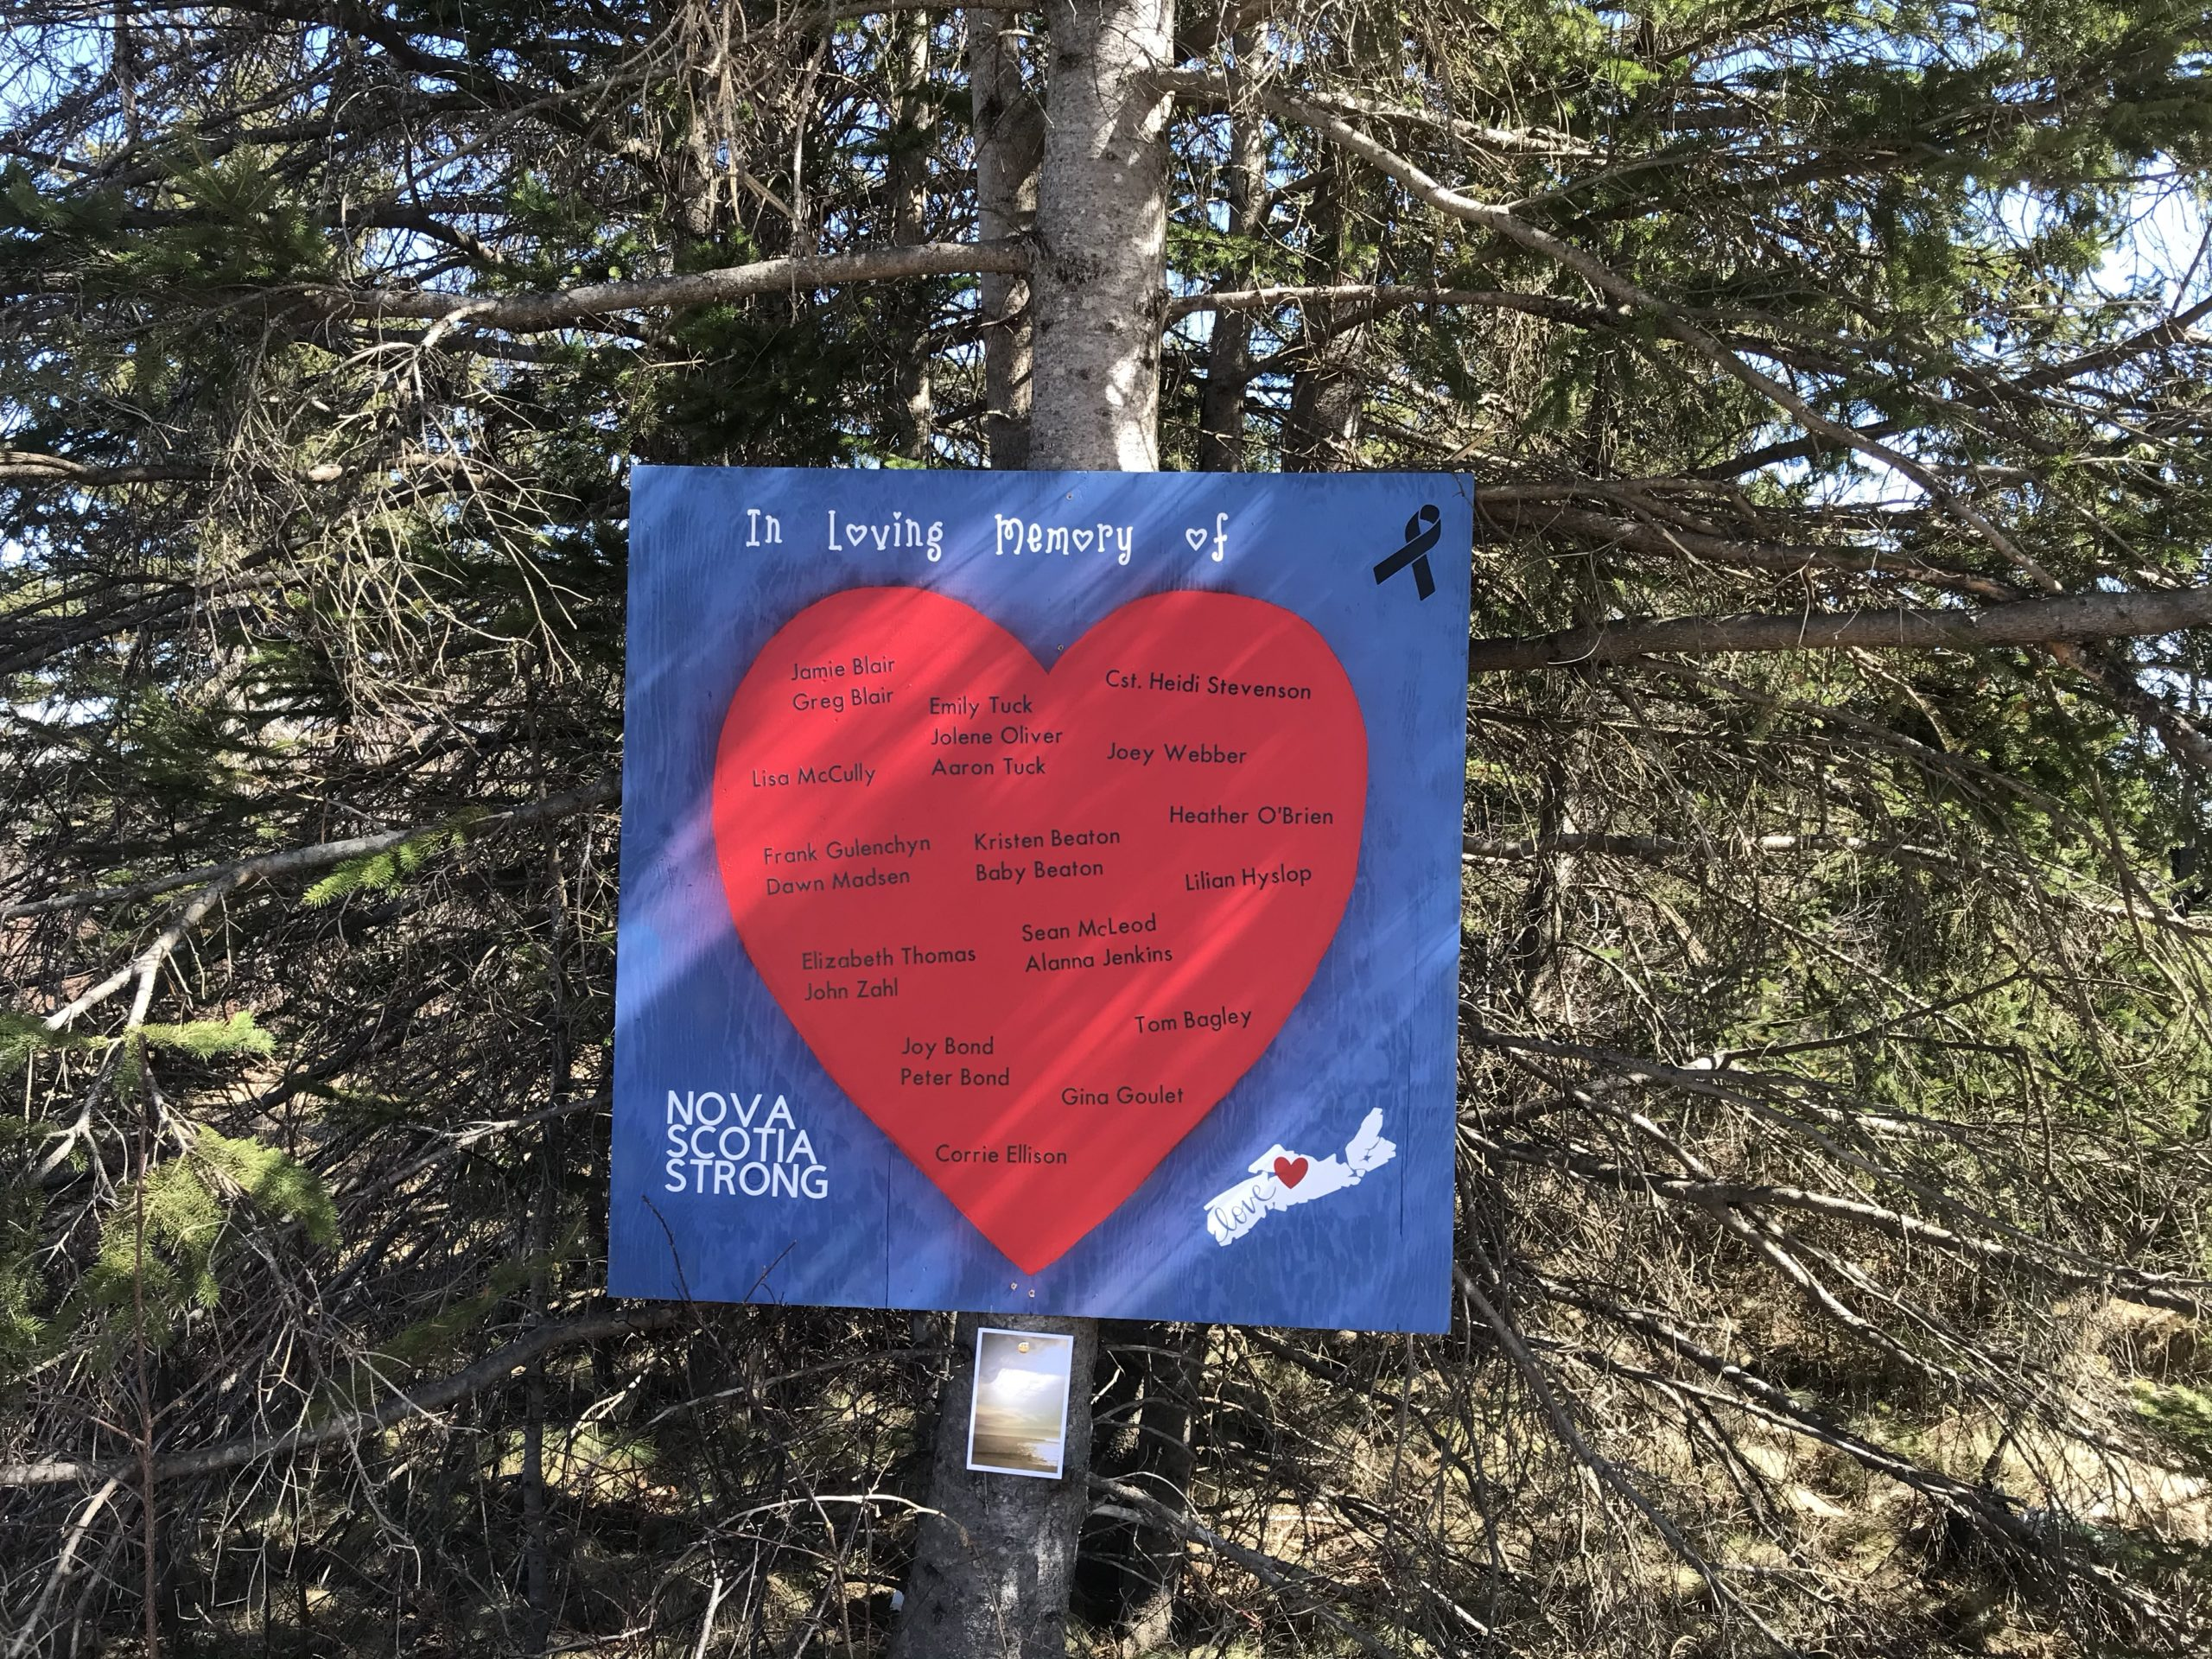 A poster at the roadside memorial in Portapique commemorates the 22 people killed in the mass shooting. It's a big red heart on a royal blue background, with the names of people written on it in black, and a small map of Nova Scotia with Nova Scotia Strong in white capital letters in the lower left corner.